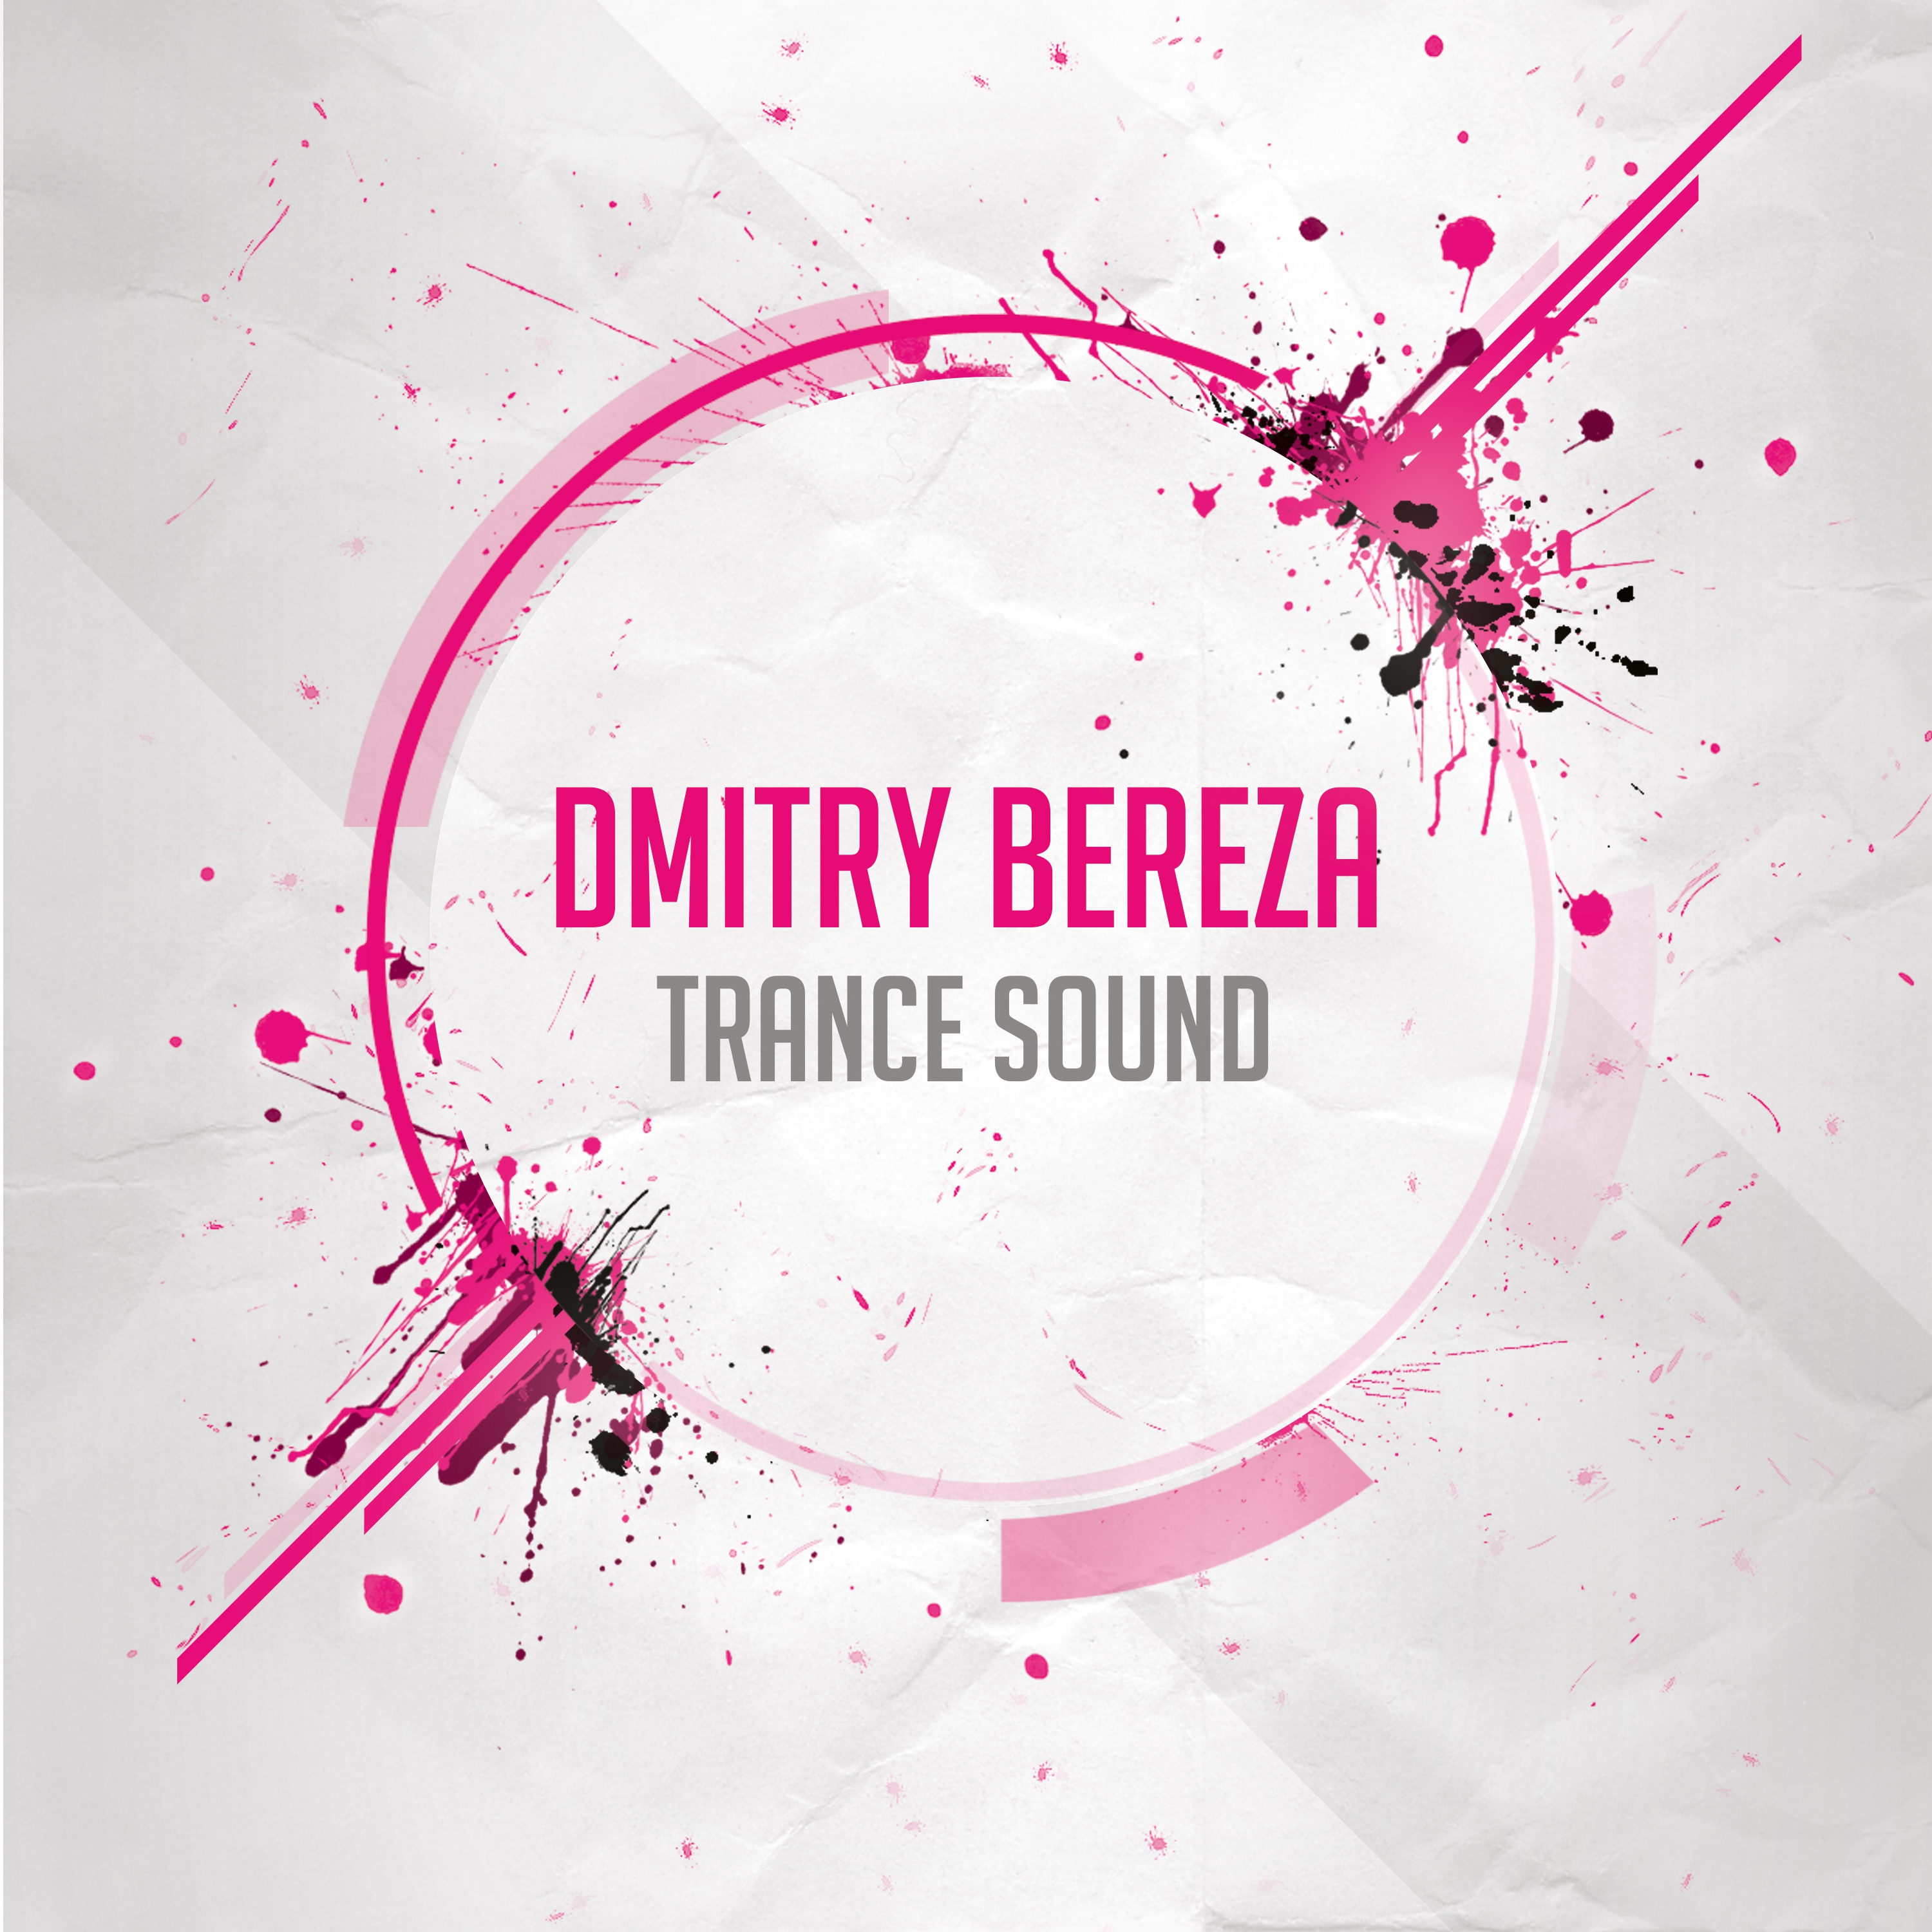 Dmitry Bereza - Firebird (Original Mix)